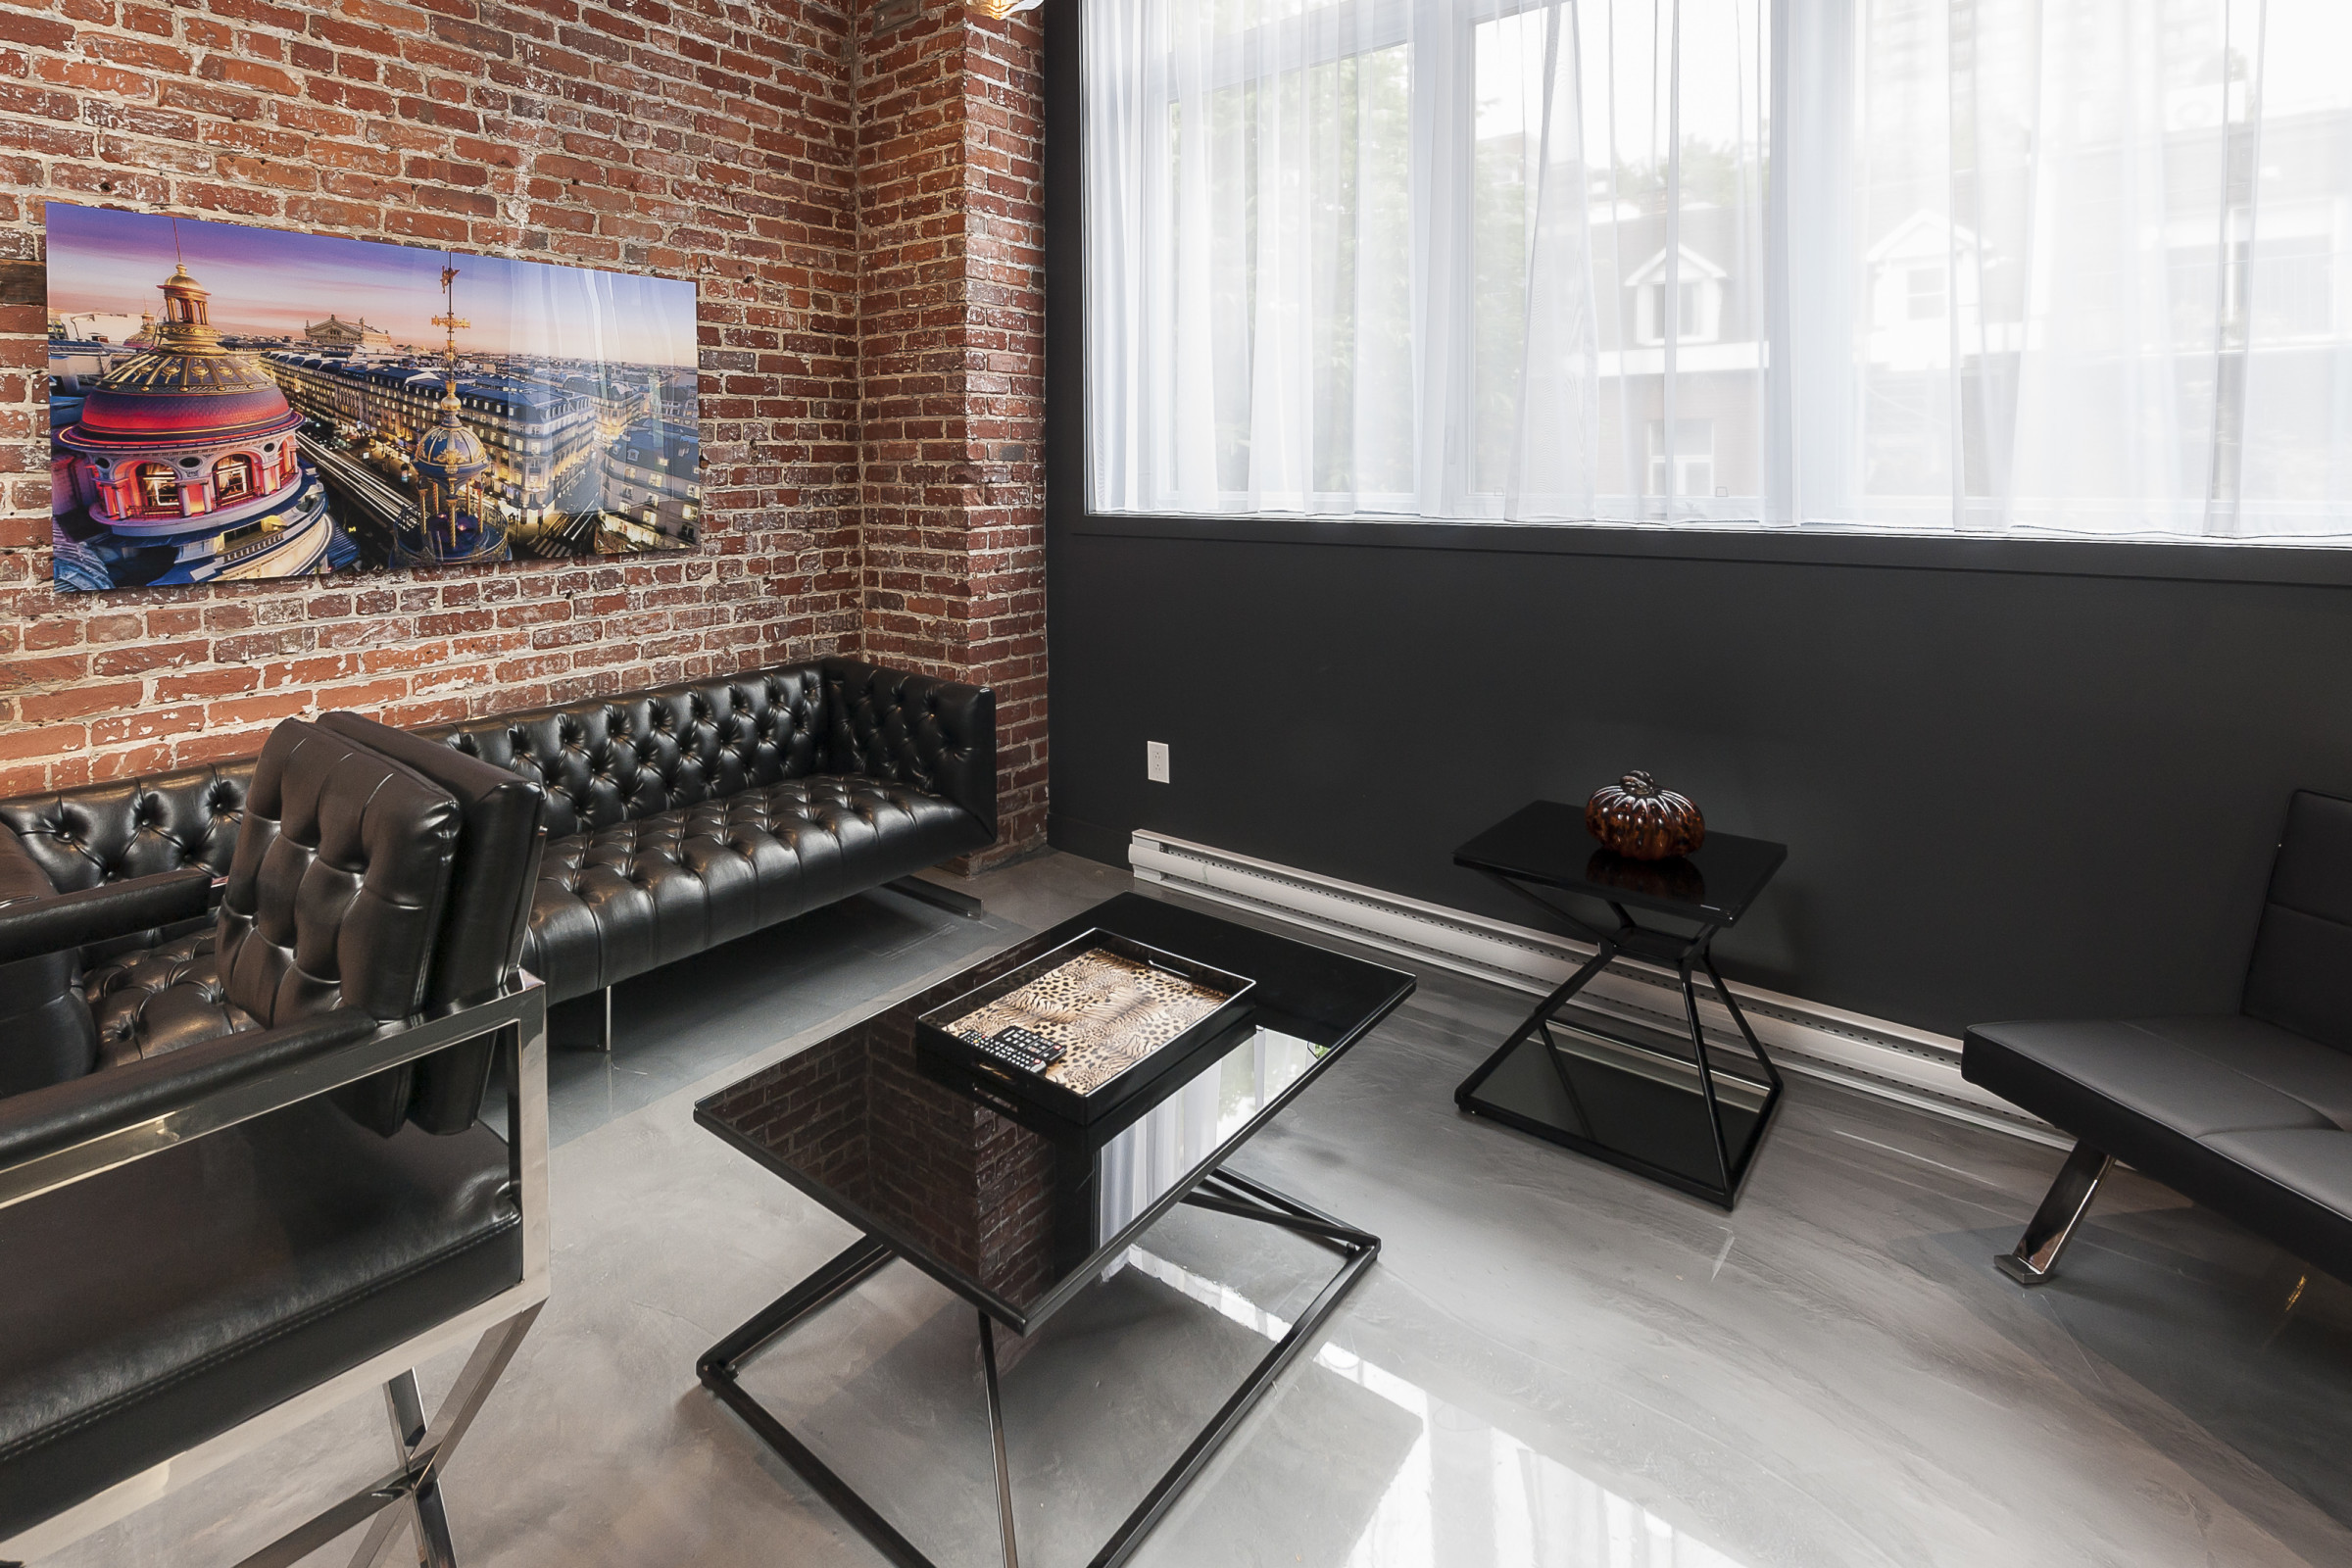 Hotel Milton Parc Is Definitely The Reference Type Loft Design Hotels In  Montreal In The Heart Of The City Center, Located At 3 Min Of Place Des  Arts.